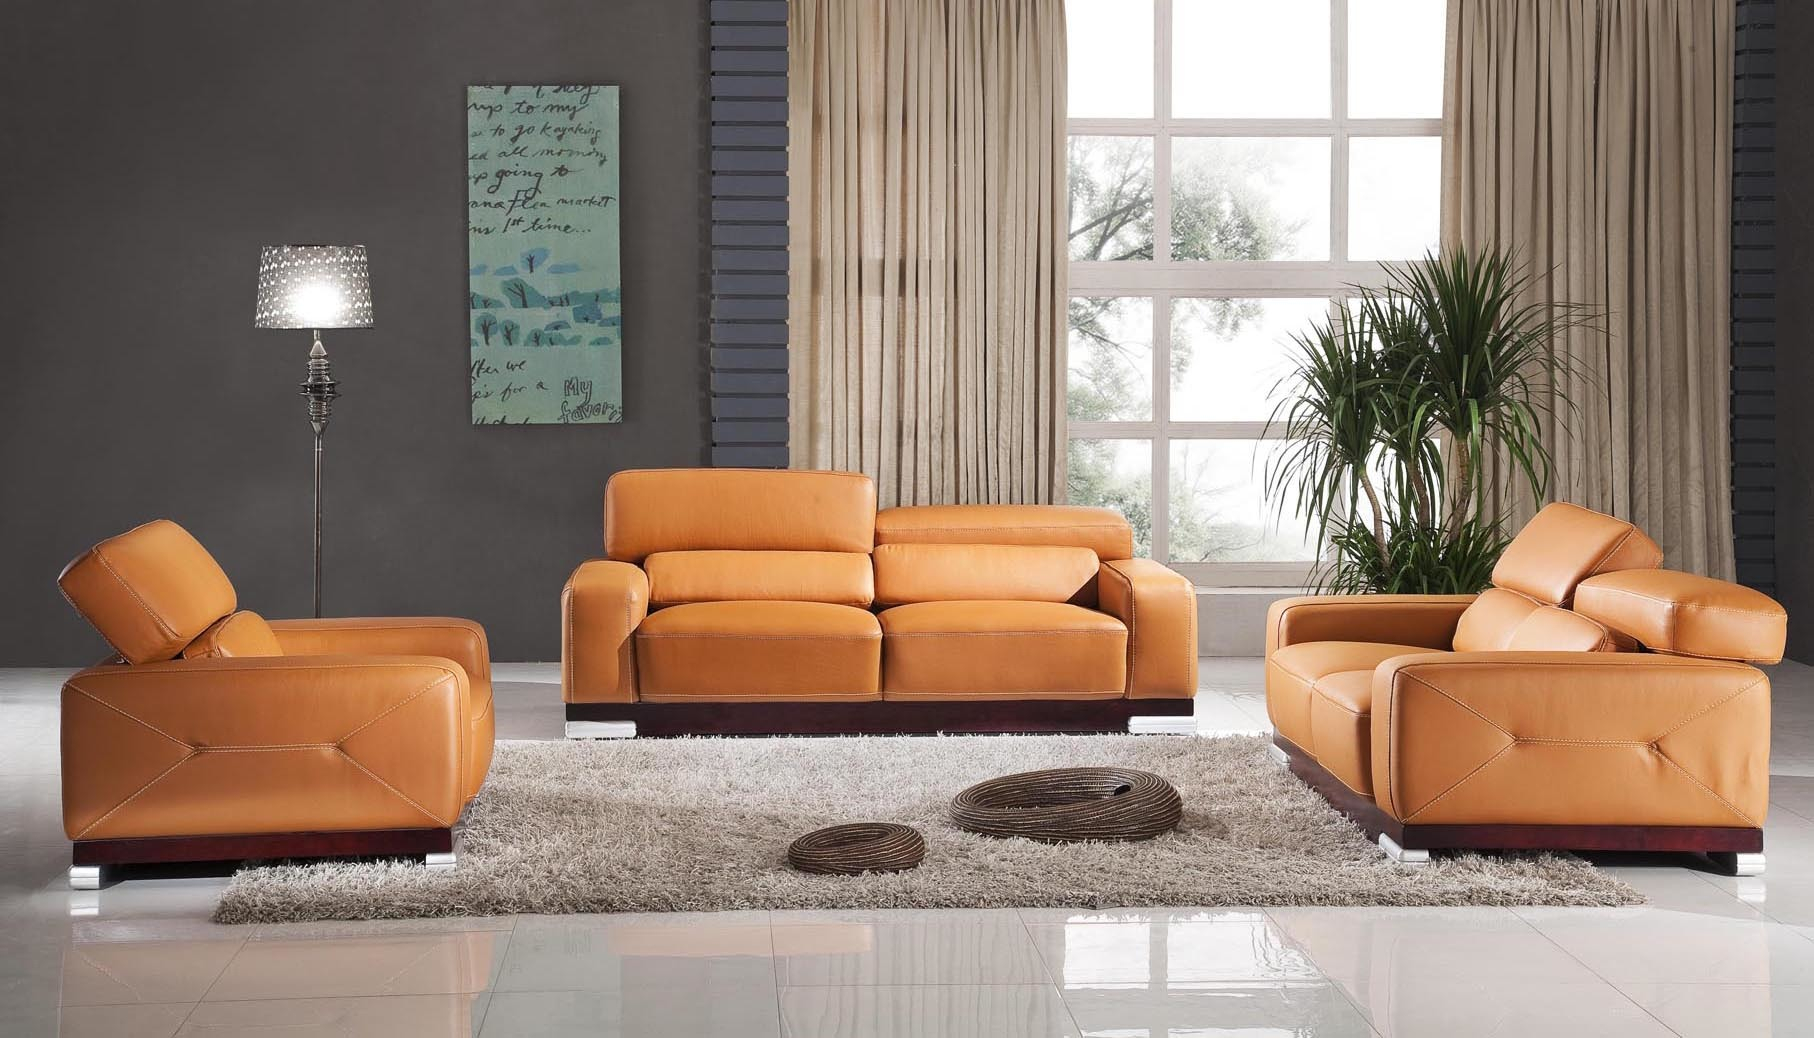 Furniture Entertaining Fancy Cheap Living Room Sets Under 500 For intended for 15 Genius Ways How to Build Cheap Nice Living Room Sets